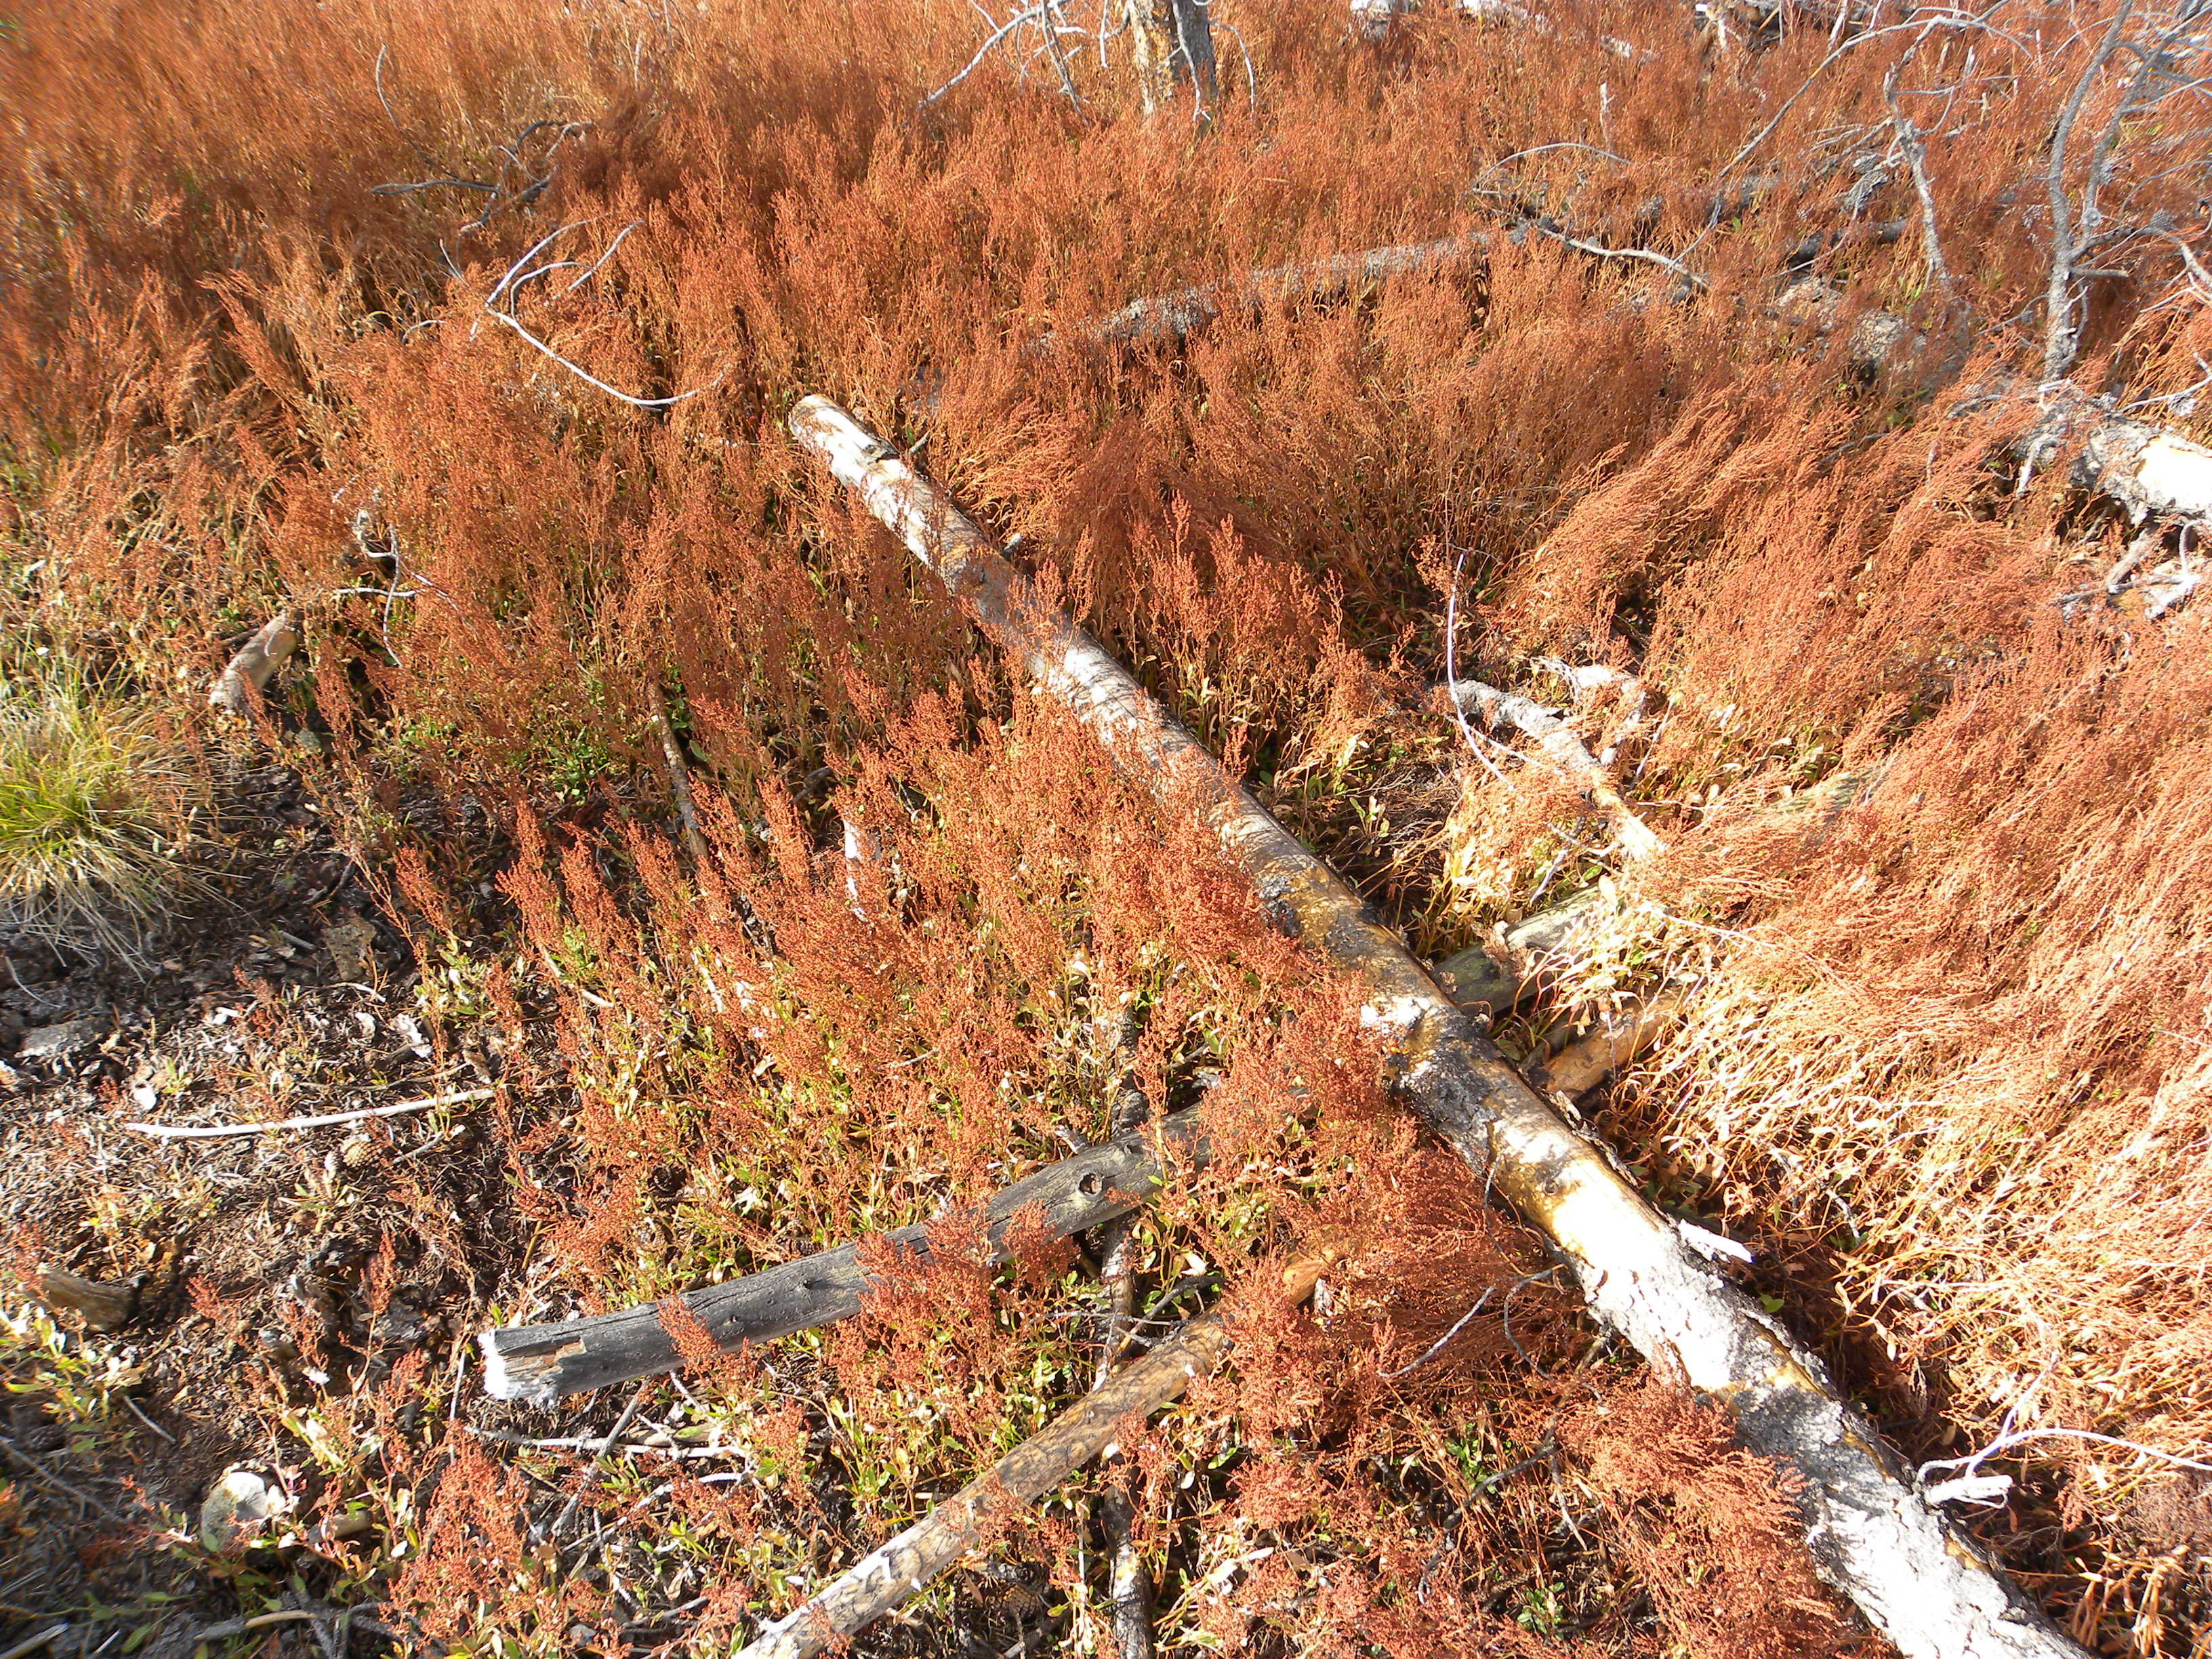 Hot springs plants in fall color